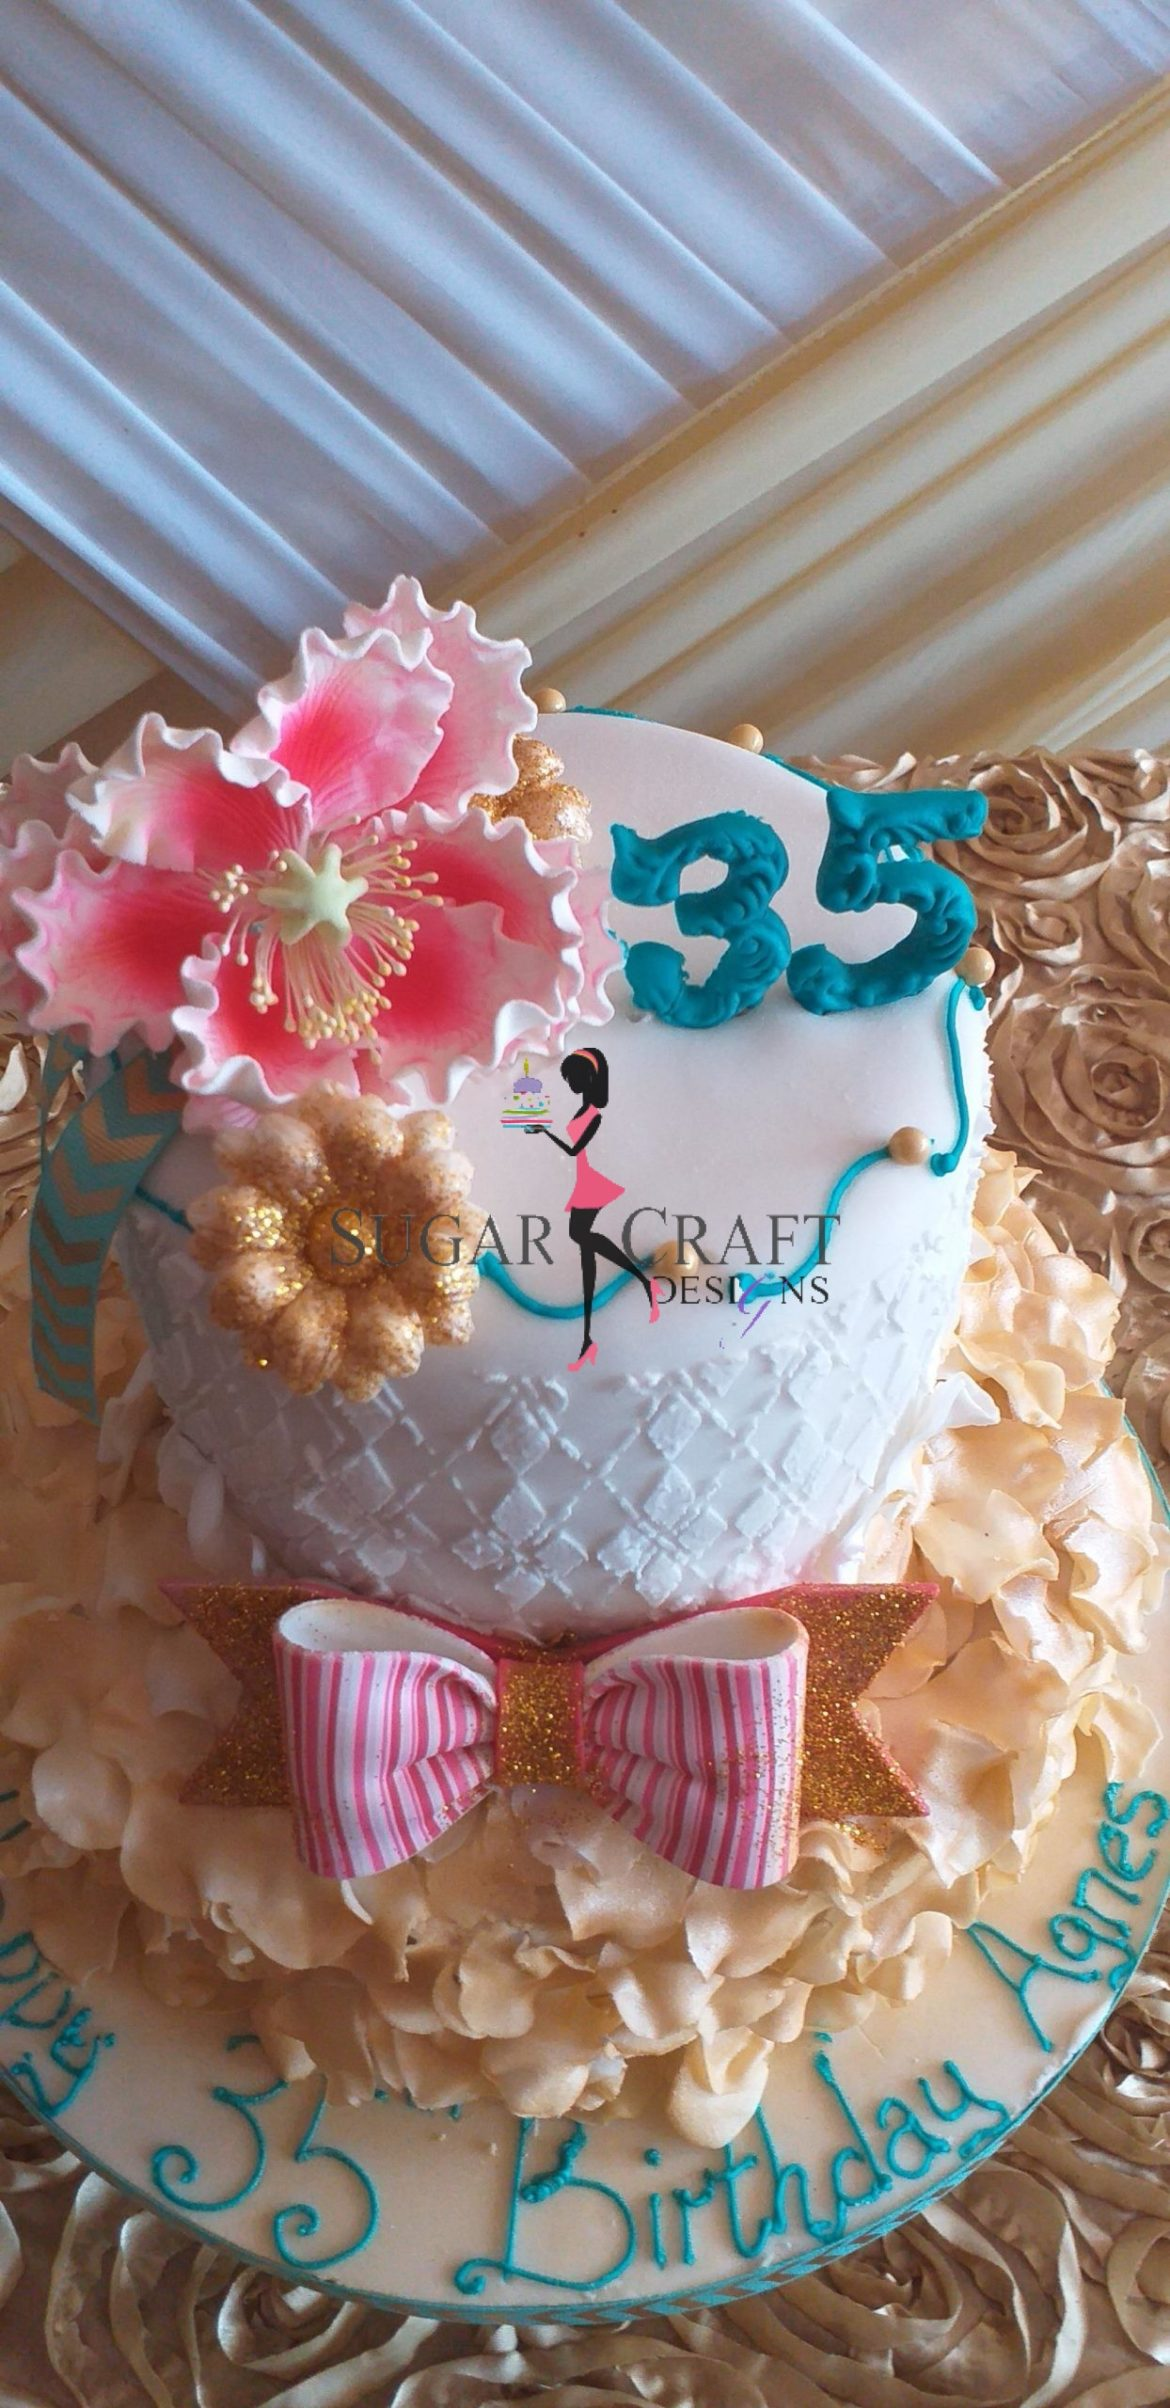 35th-2-tiered-bday-cake-scaled.jpg